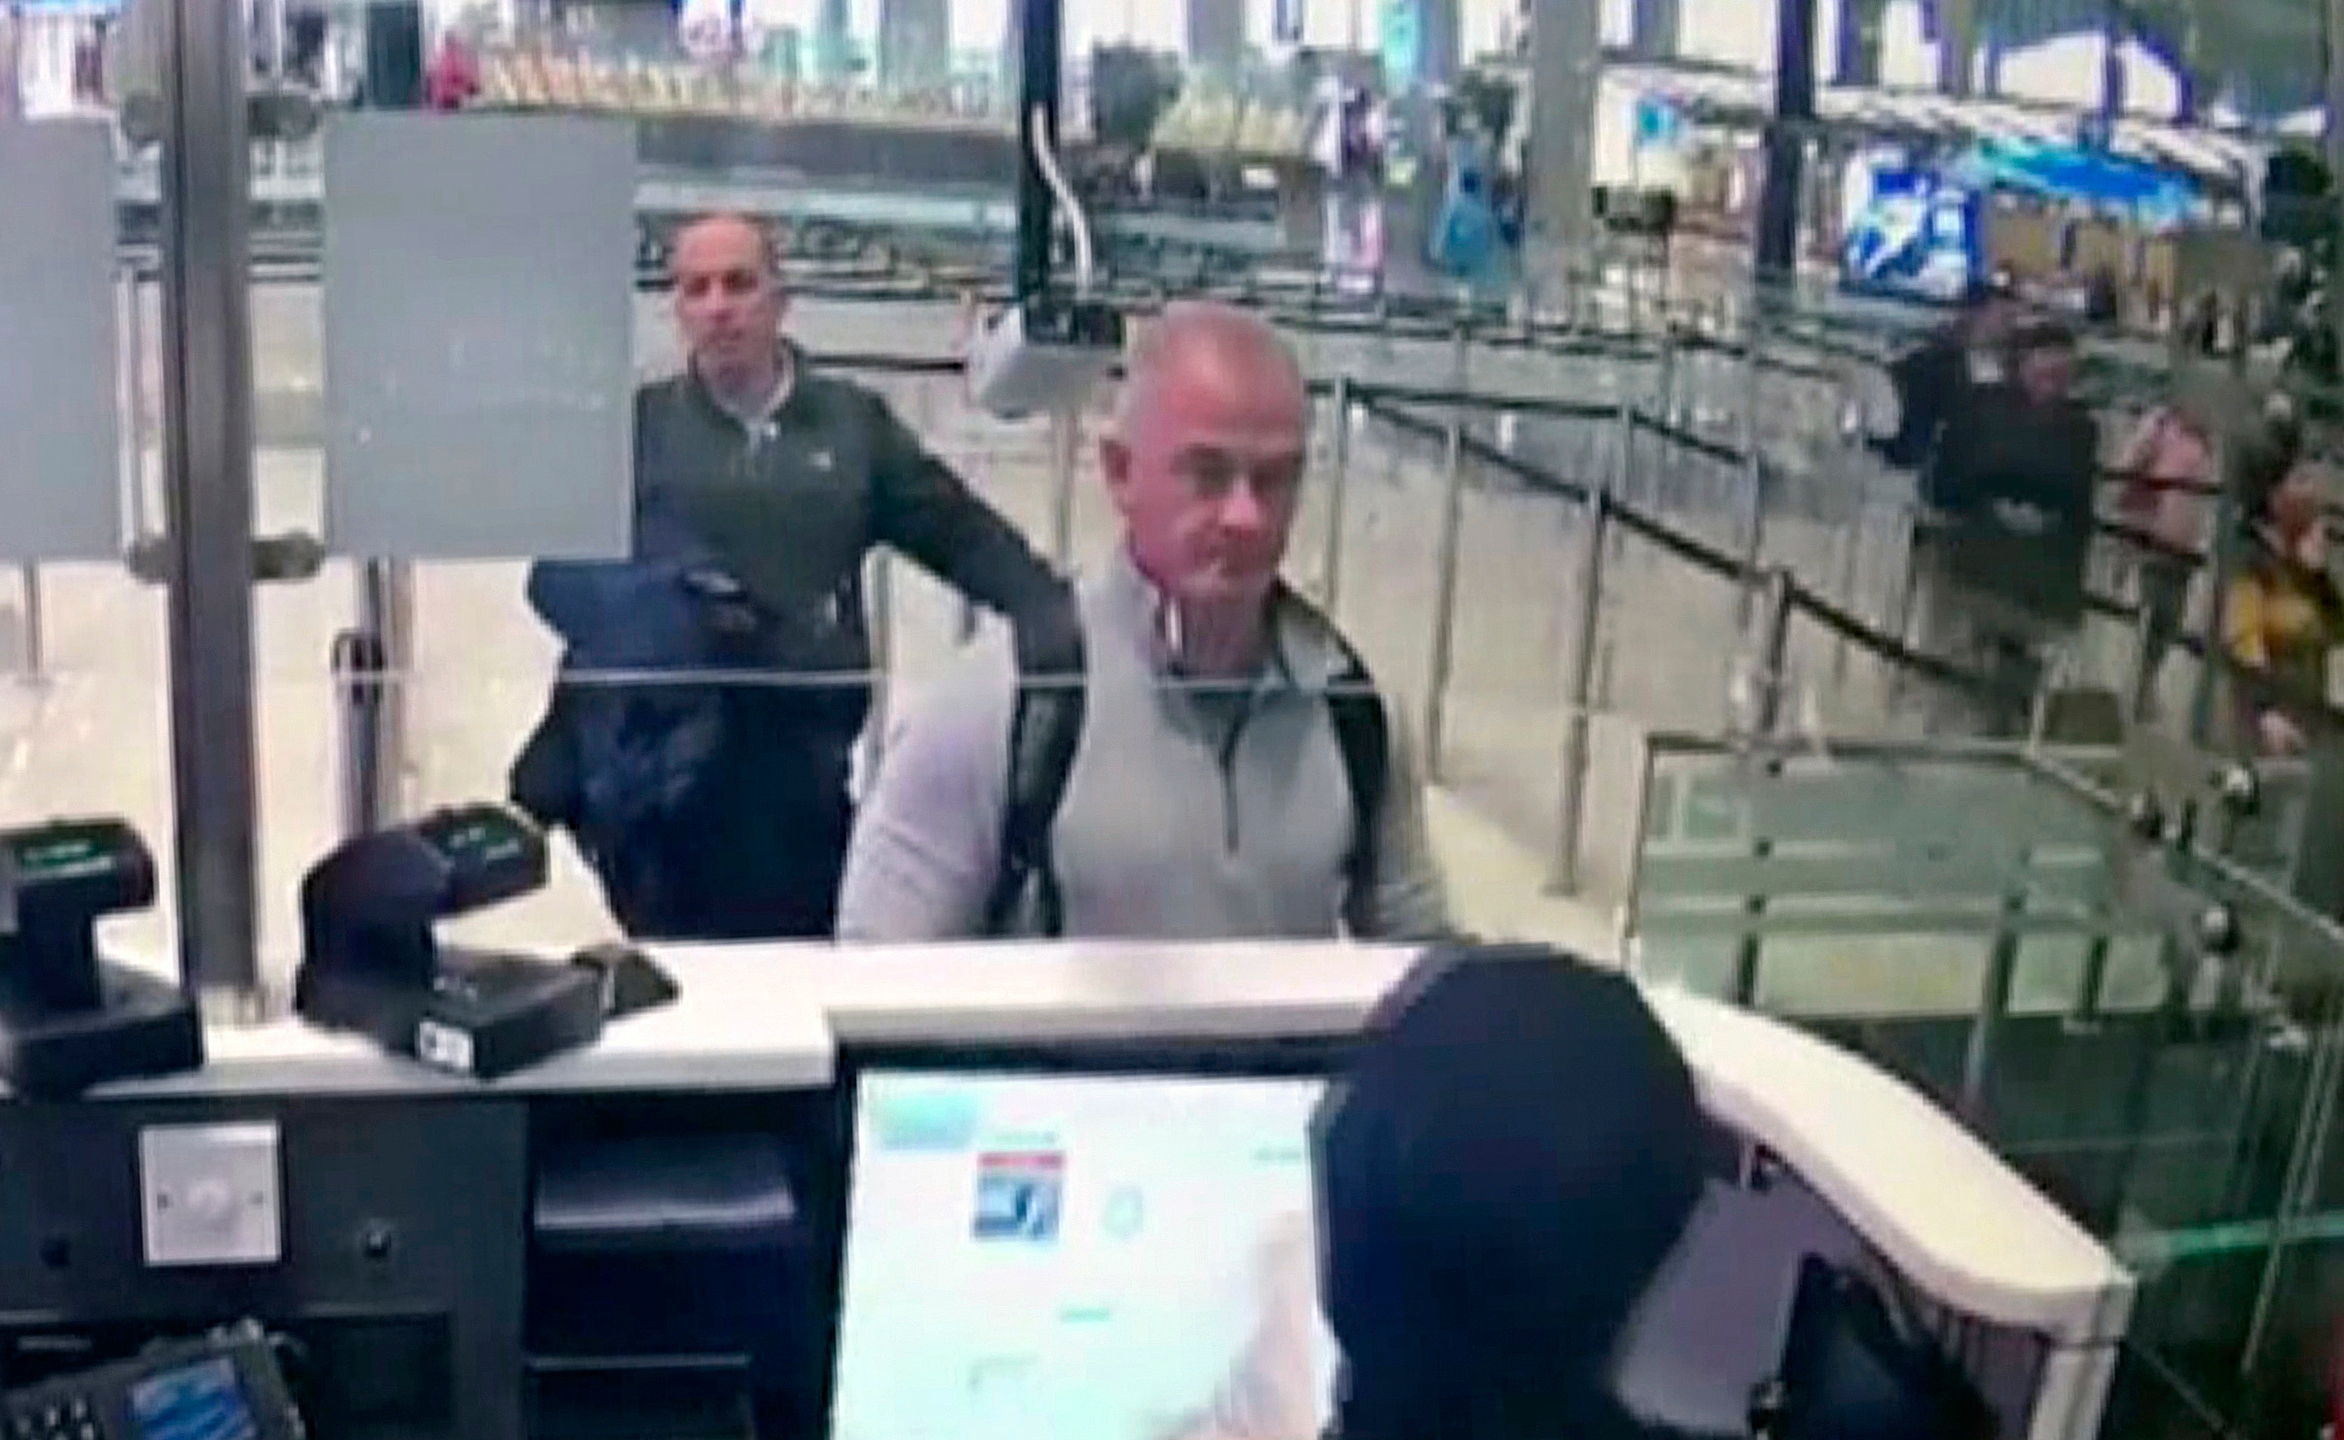 This Dec. 30, 2019, image from security camera video shows Michael L. Taylor, center, and George-Antoine Zayek at passport control at Istanbul Airport in Turkey. A Tokyo court handed down prison terms for the American father Michael Taylor and son Peter accused of helping Nissan's former chairman, Carlos Ghosn, escape to Lebanon while awaiting trial in Japan.(DHA via AP, File)